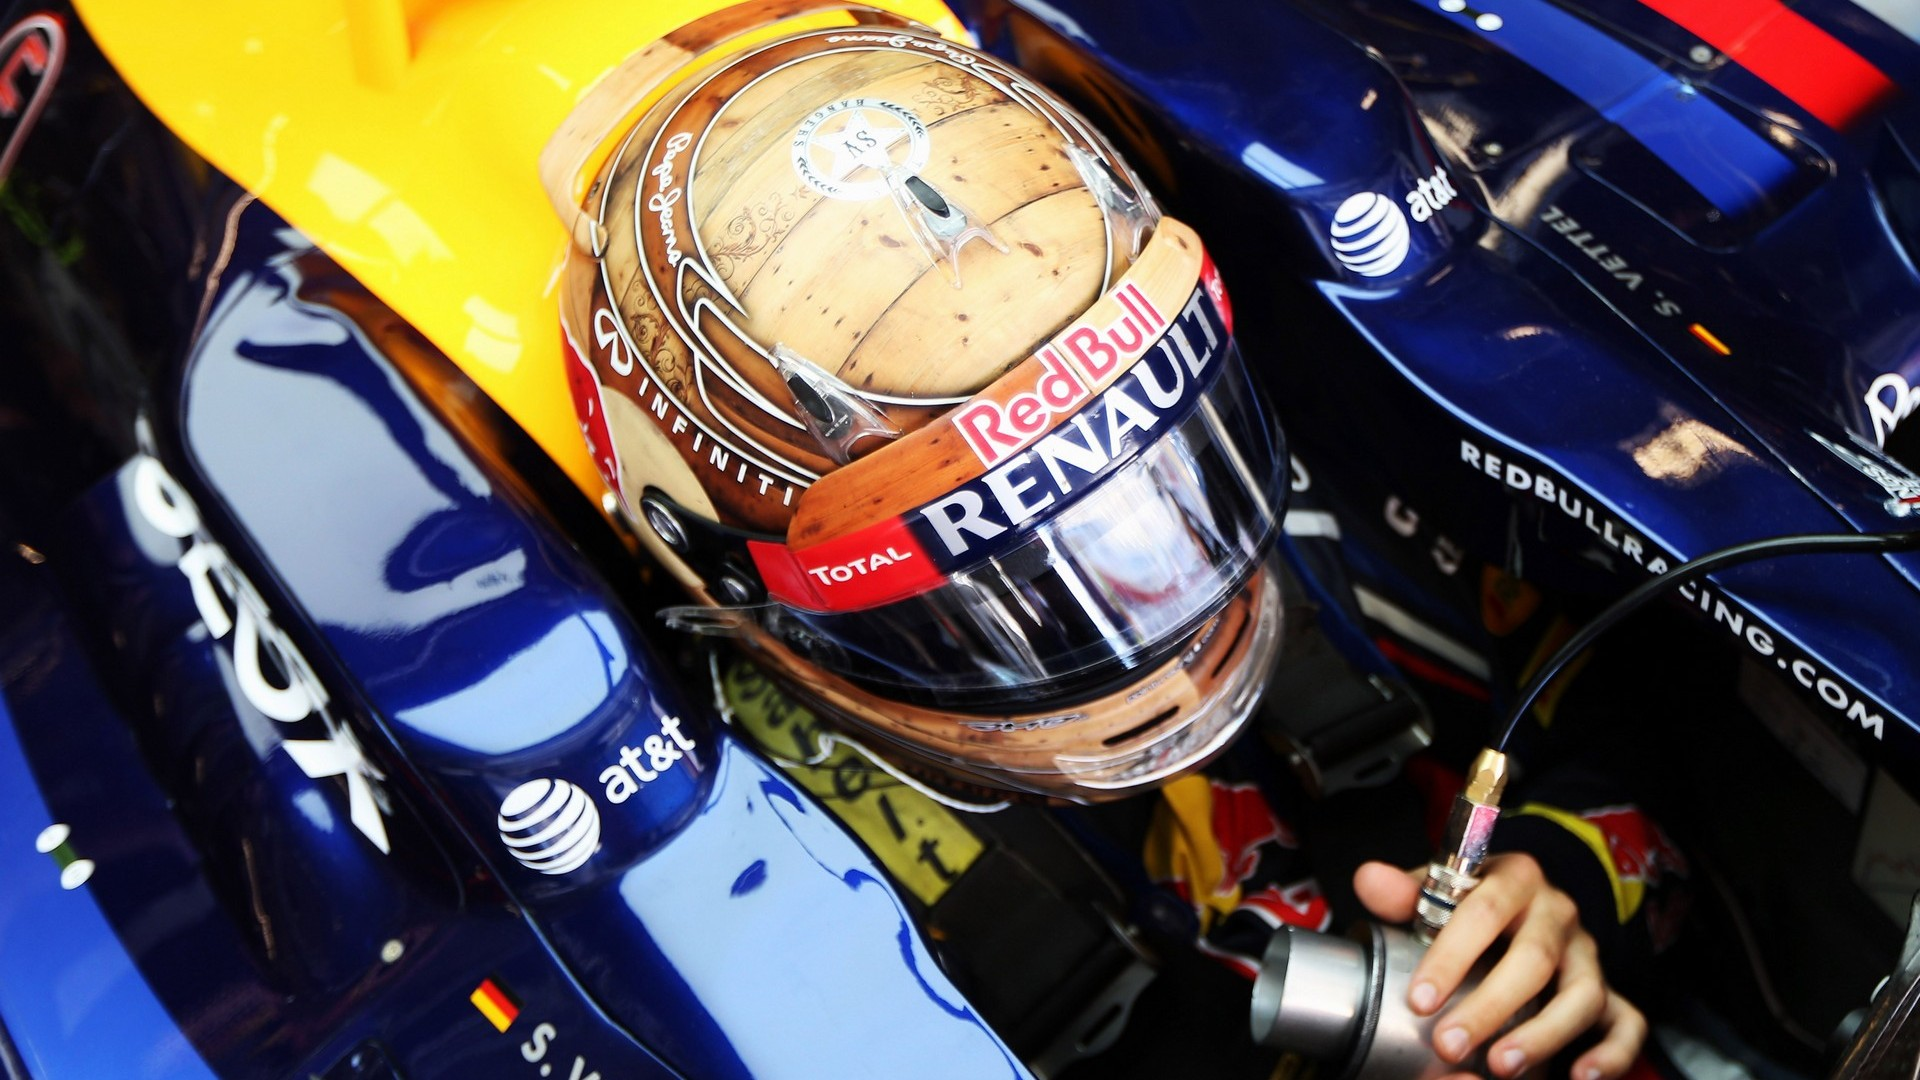 HD Wallpapers 2012 Formula 1 Grand Prix Of The United